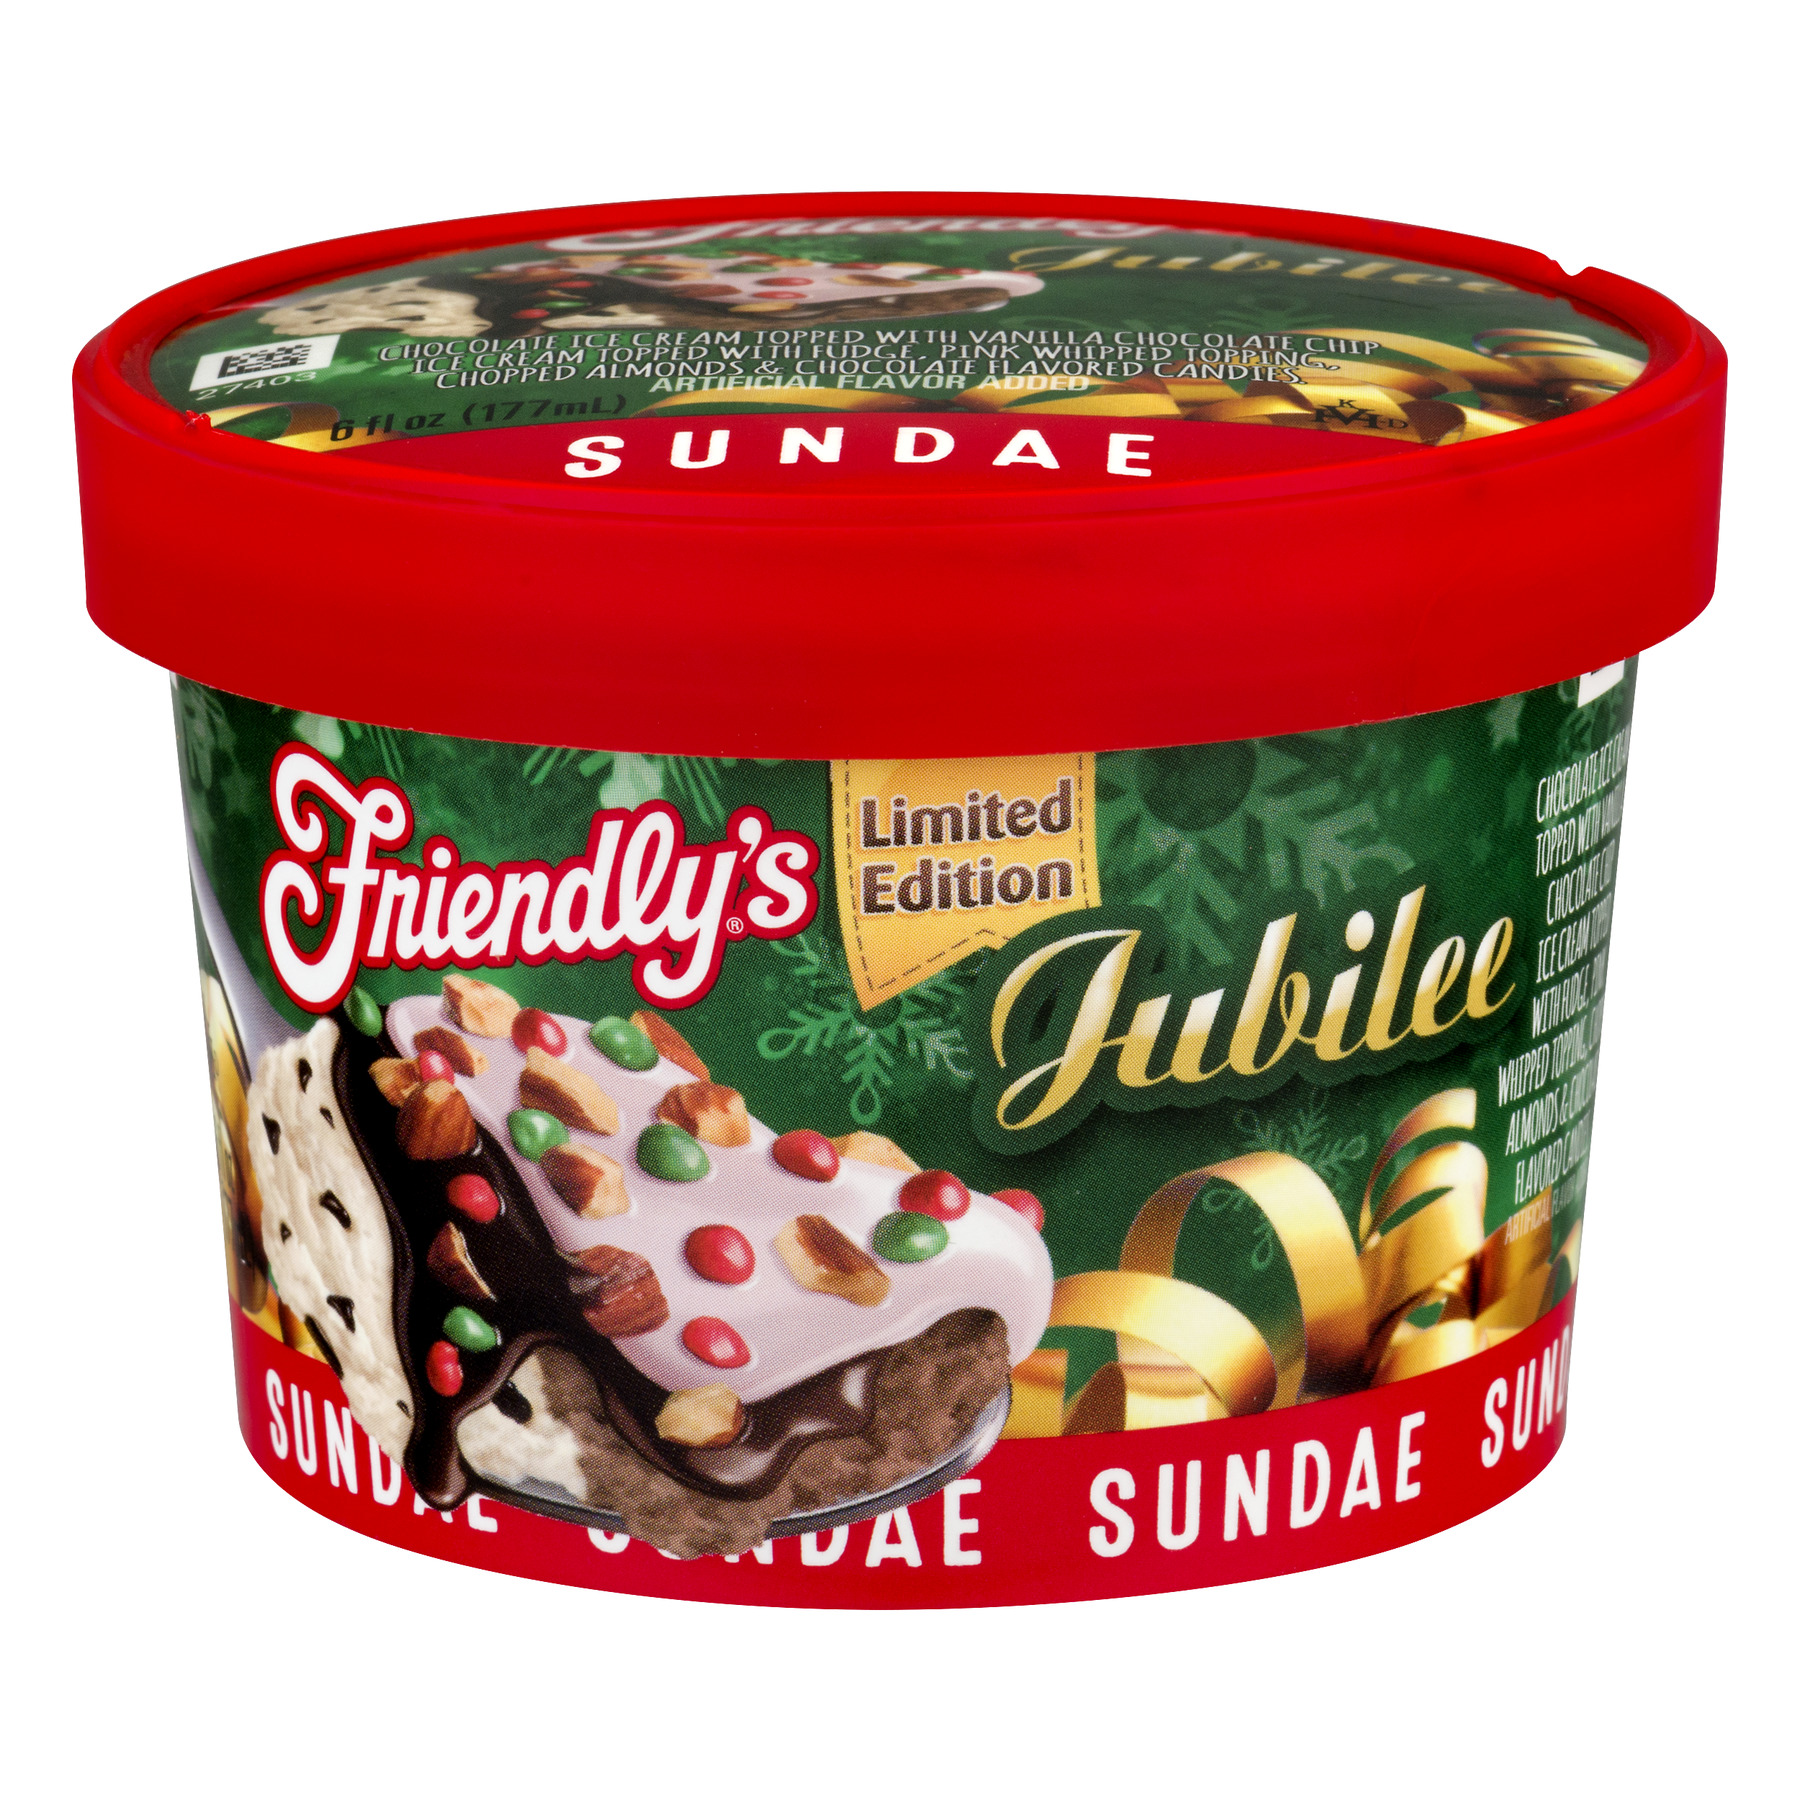 Friendly's Sundae Jubilee, 6.0 FL OZ